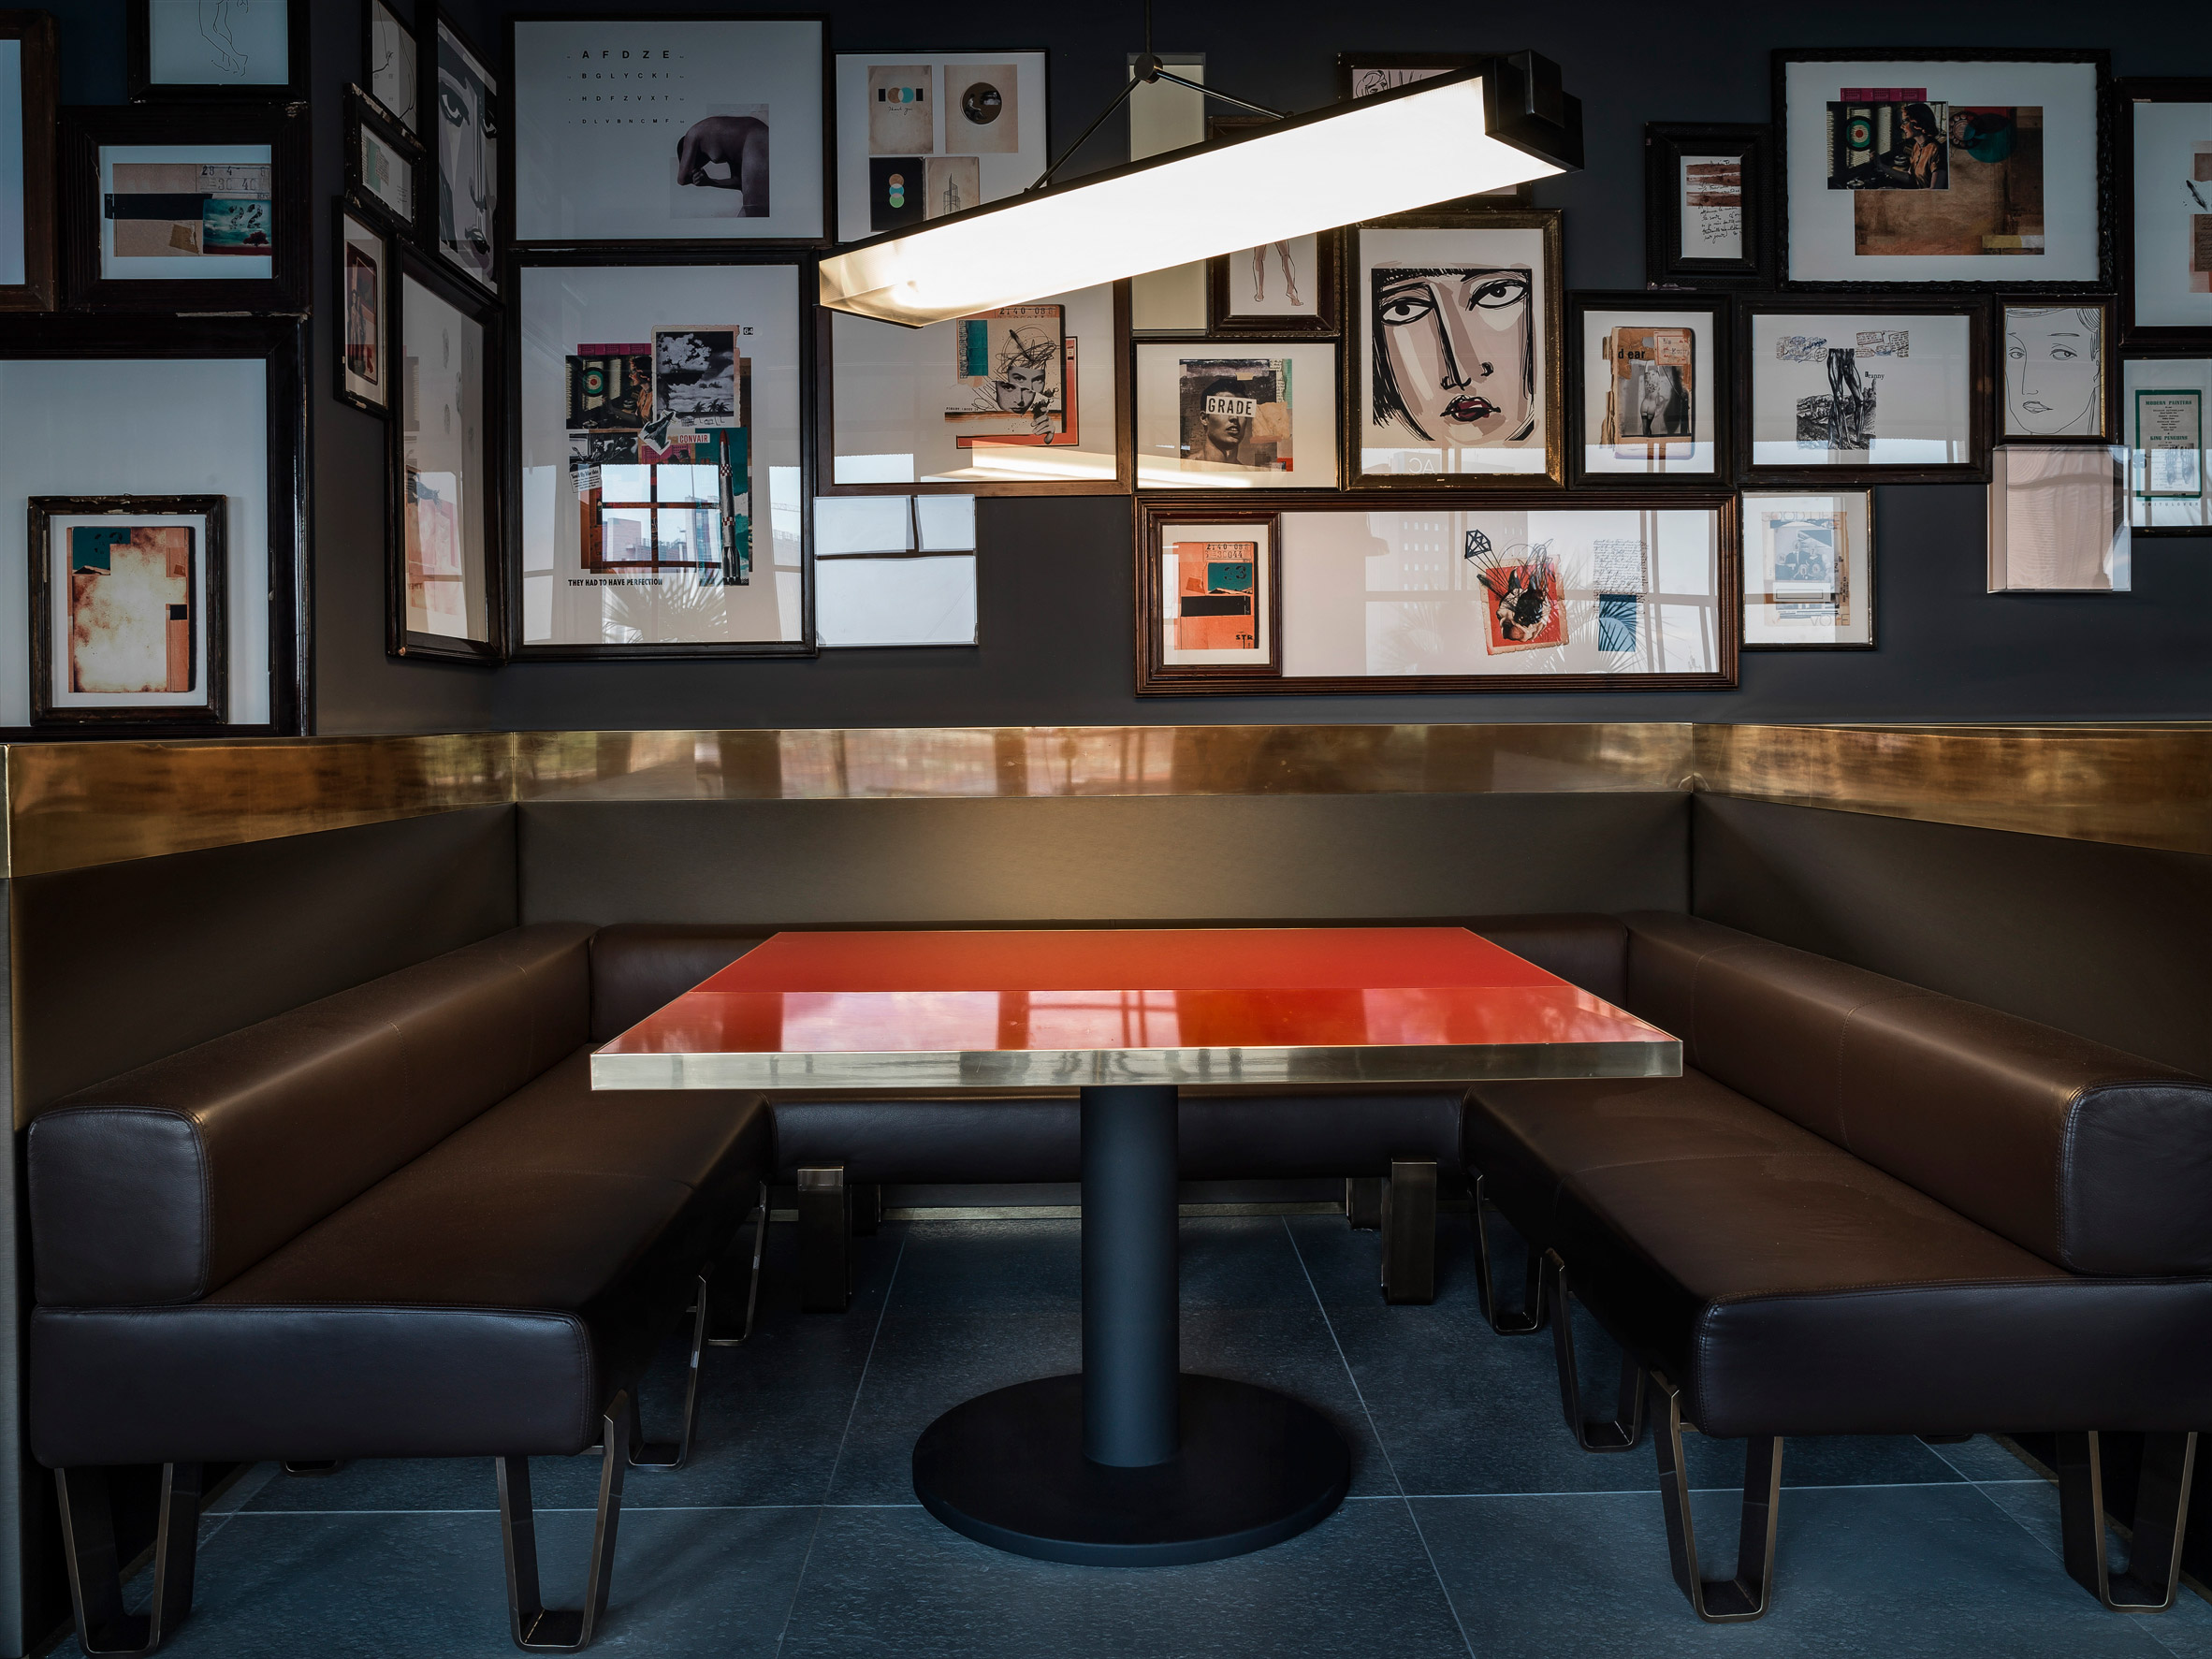 milan-designers-pick-guide-restaurants-bars-clubs-design_dezeen_2364_col_12.jpg